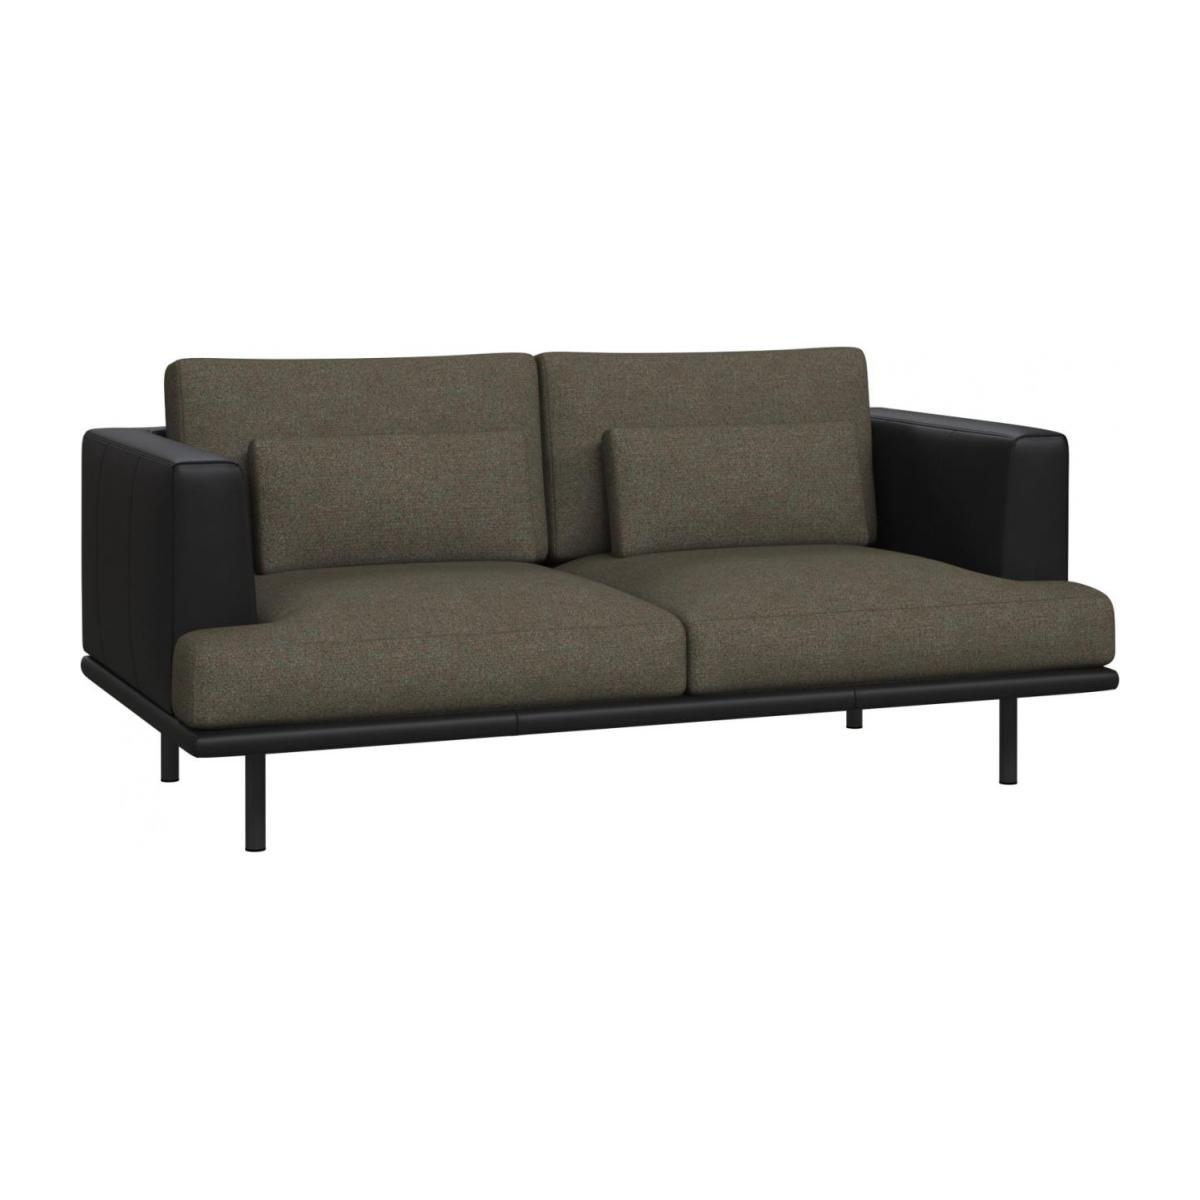 2 seater sofa in Lecce fabric, slade grey with base and armrests in black leather n°1